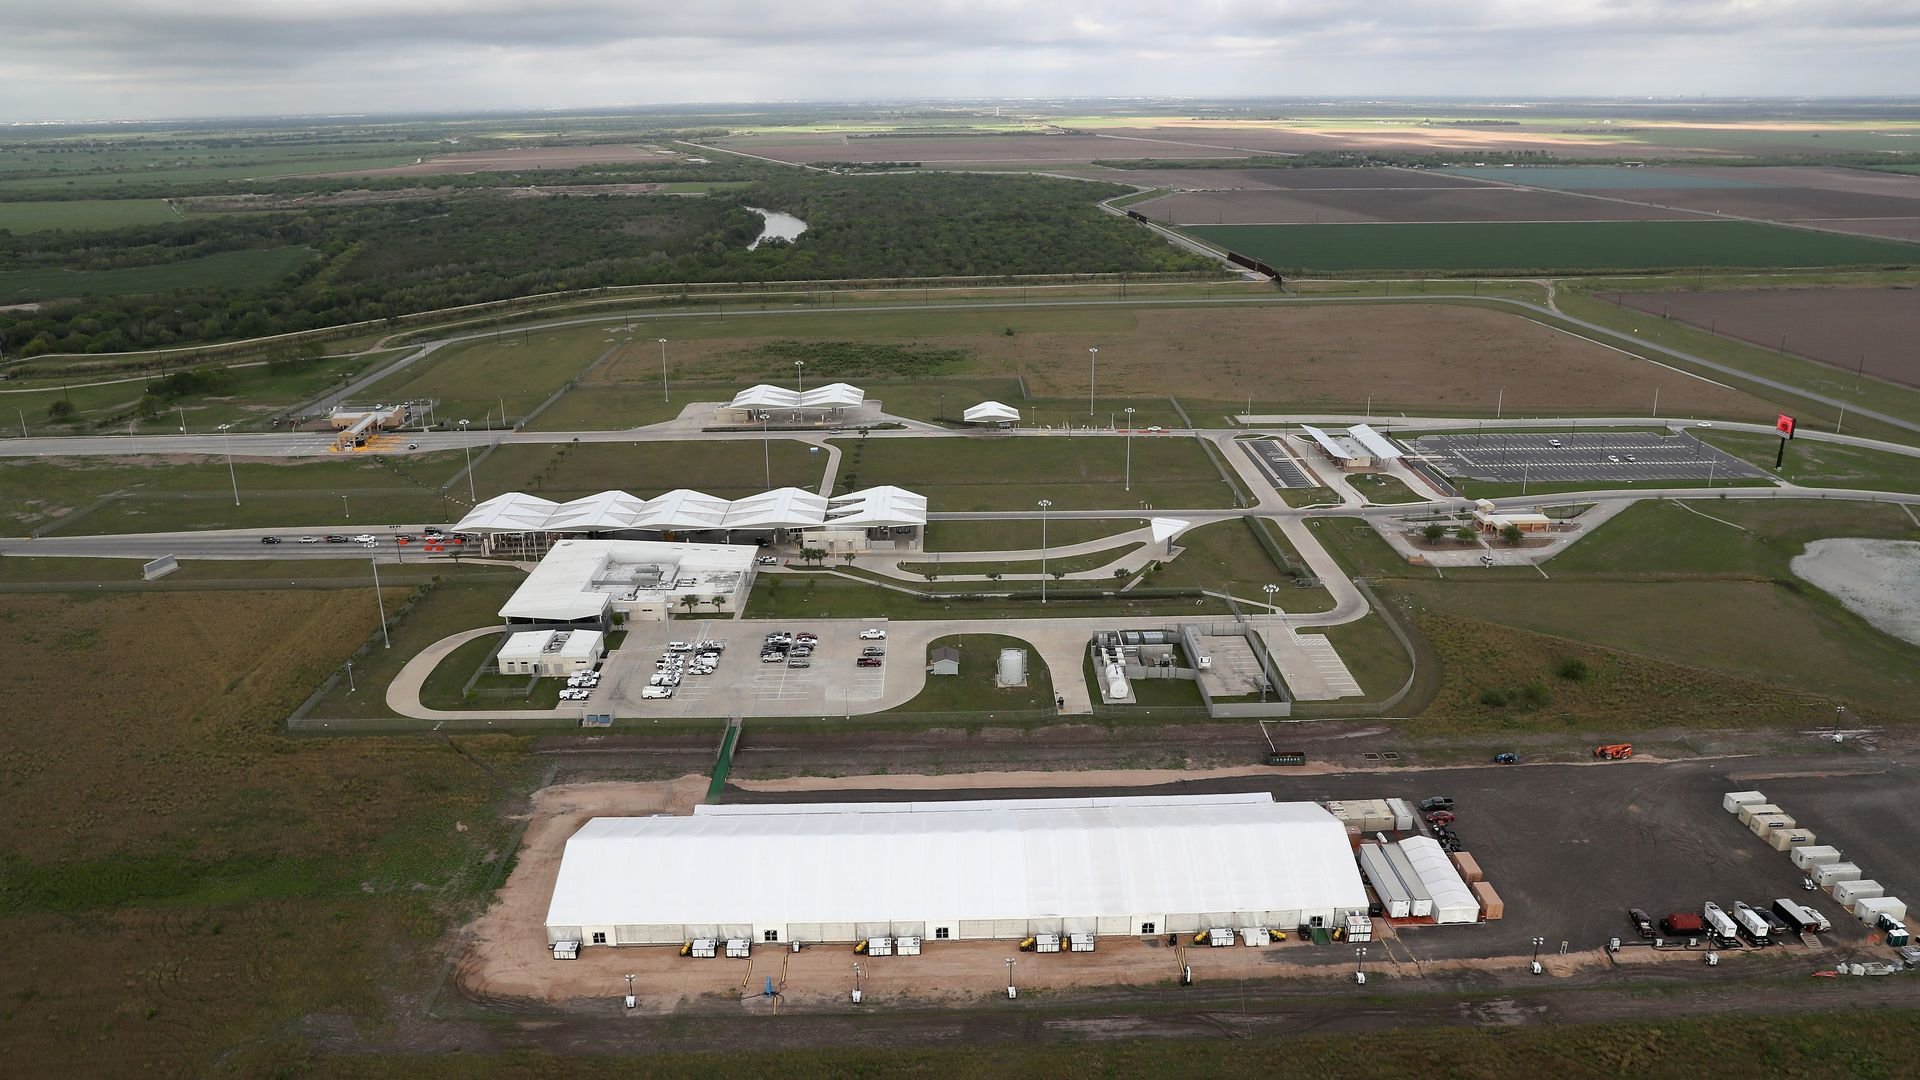 This image shows an aerial shot of the detention center in Donna, Texas